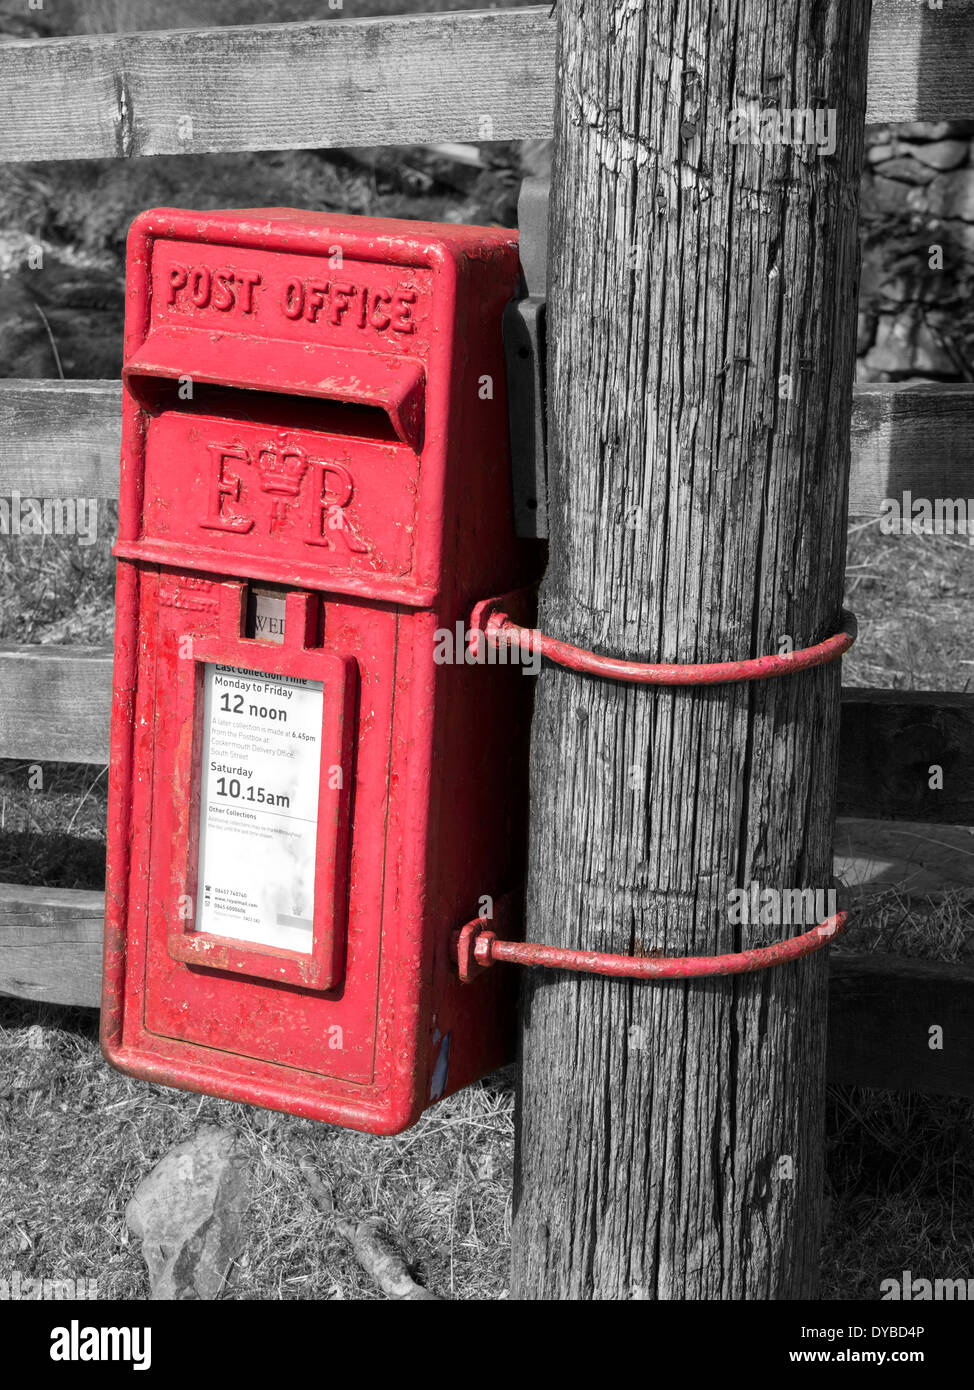 rural-bright-red-post-office-postal-box-